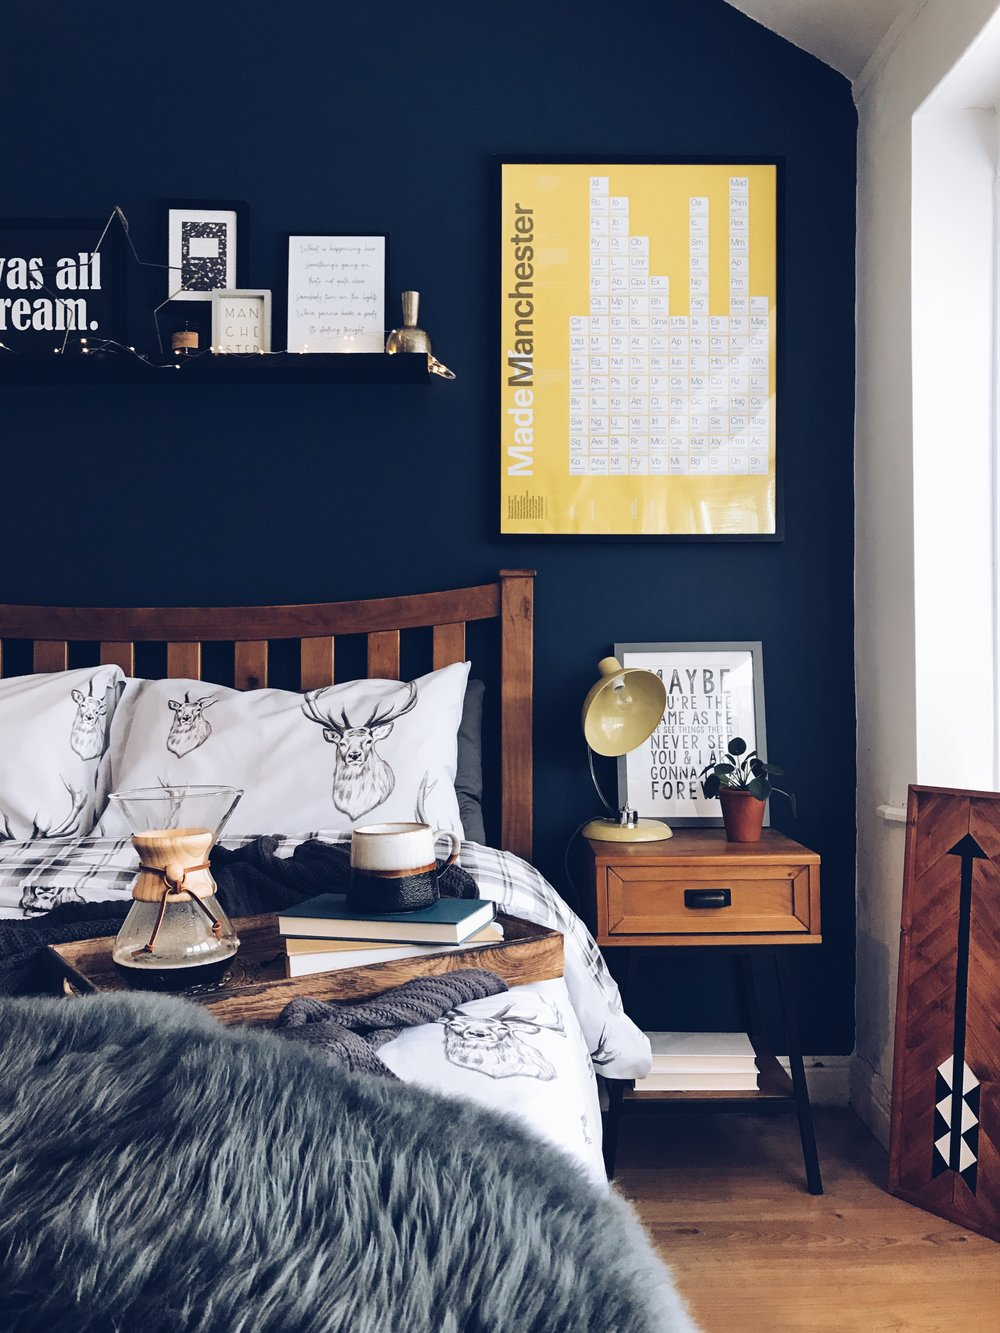 Cosy bedroom decor